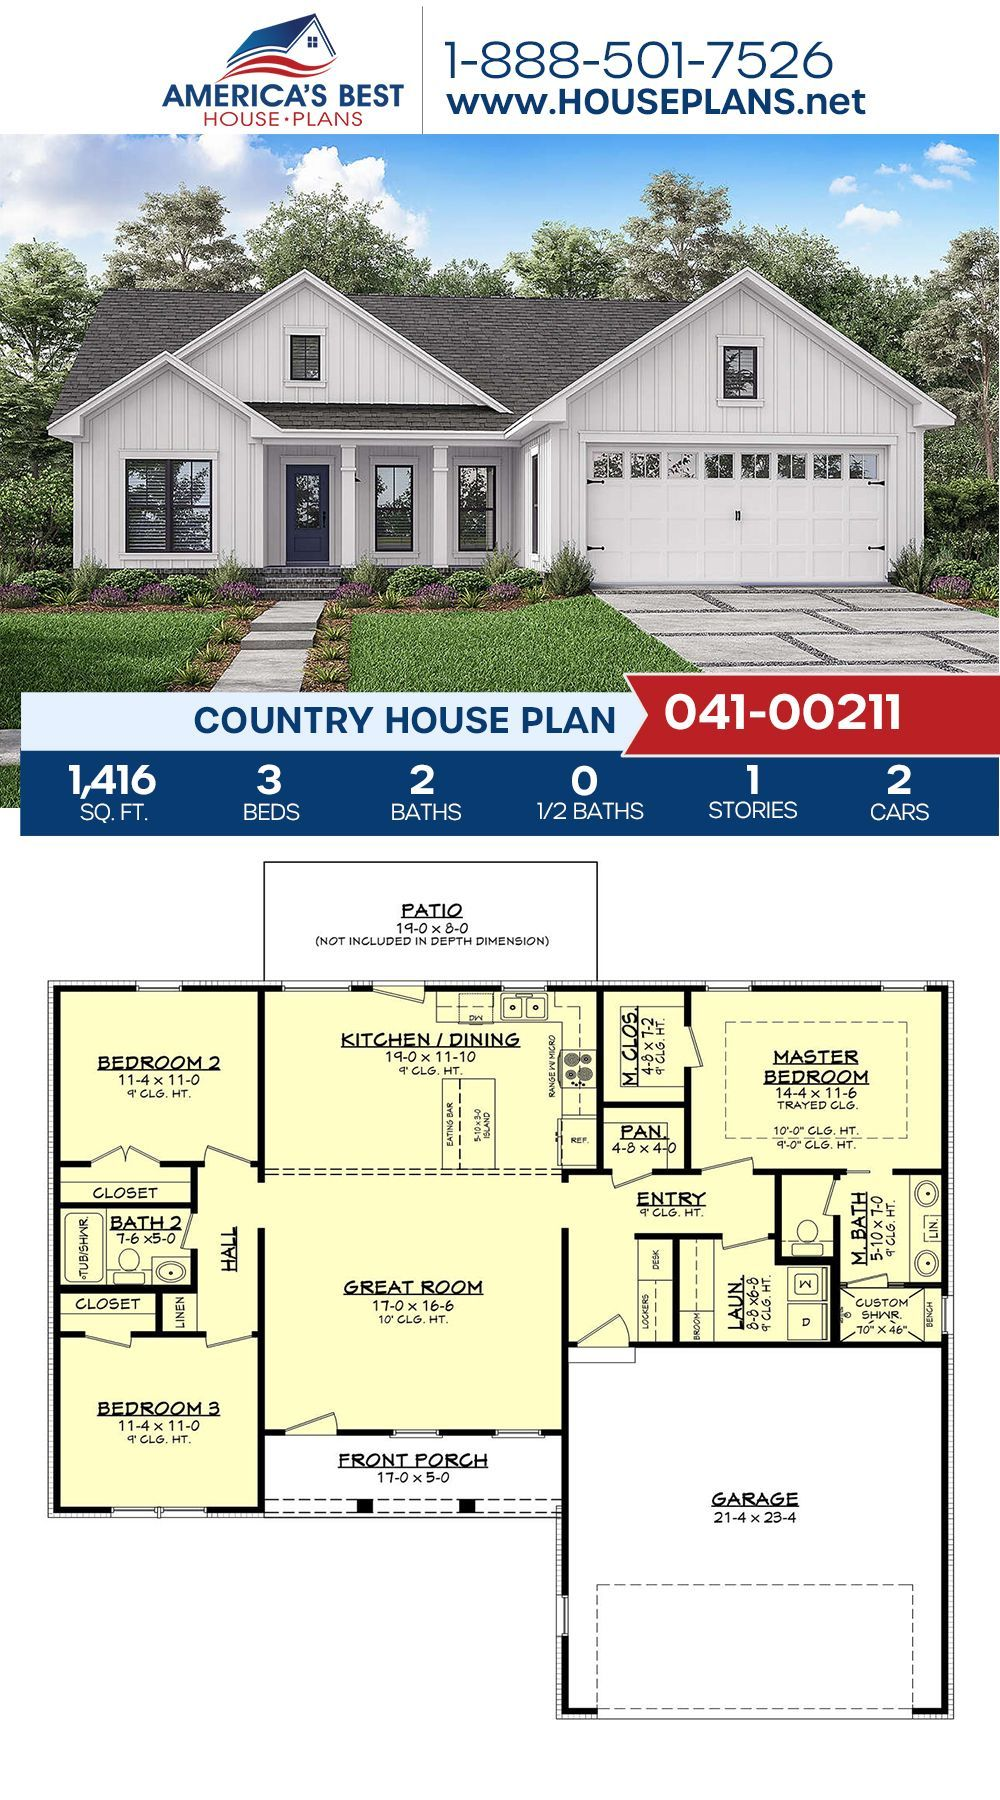 Country House Plan 041 00211 A 1 Story Country Home Plan 041 00211 Features 1 416 Sq Ft 3 In 2020 Country House Plan Ranch House Plans House Plans Farmhouse